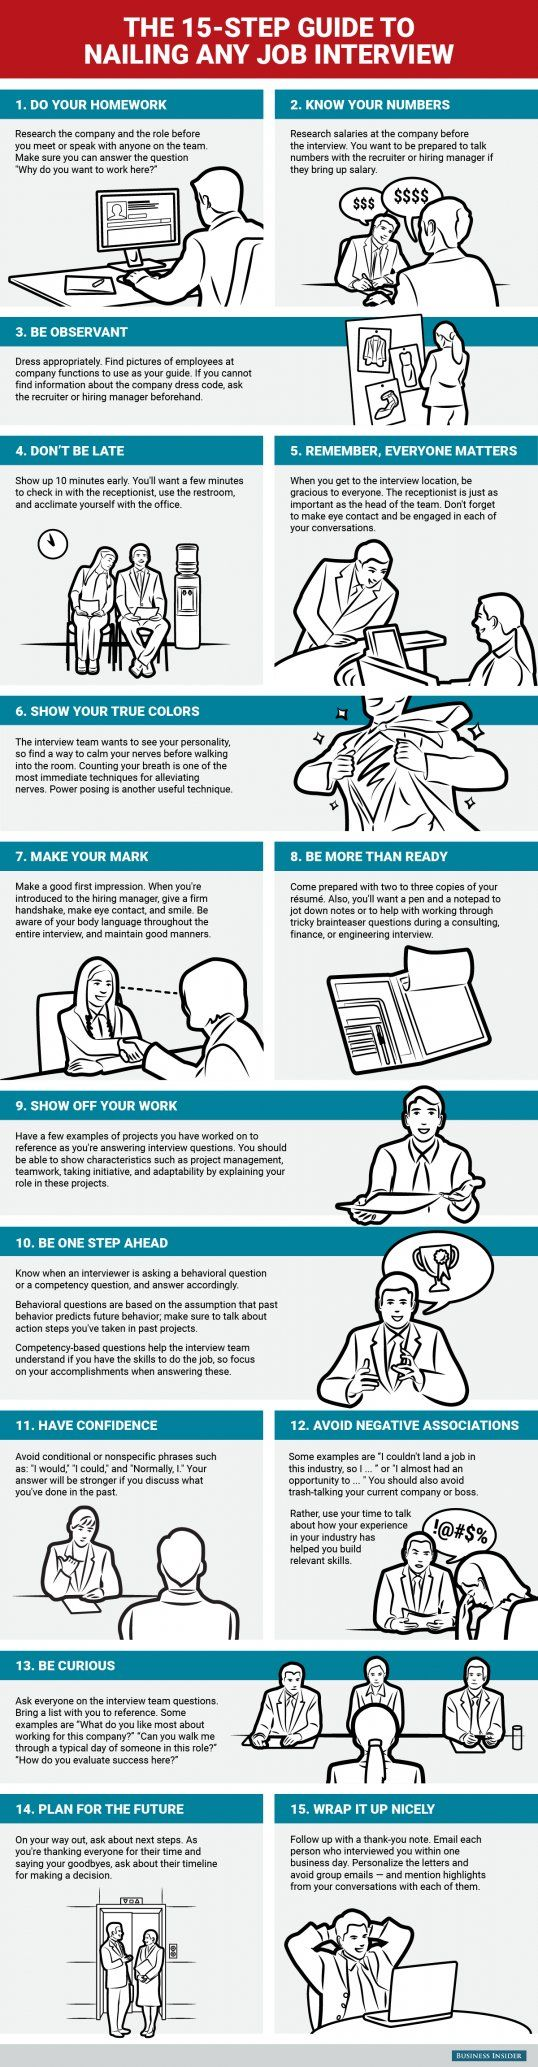 The 15-step guide to nailing any job interview | Now get out there & execute!